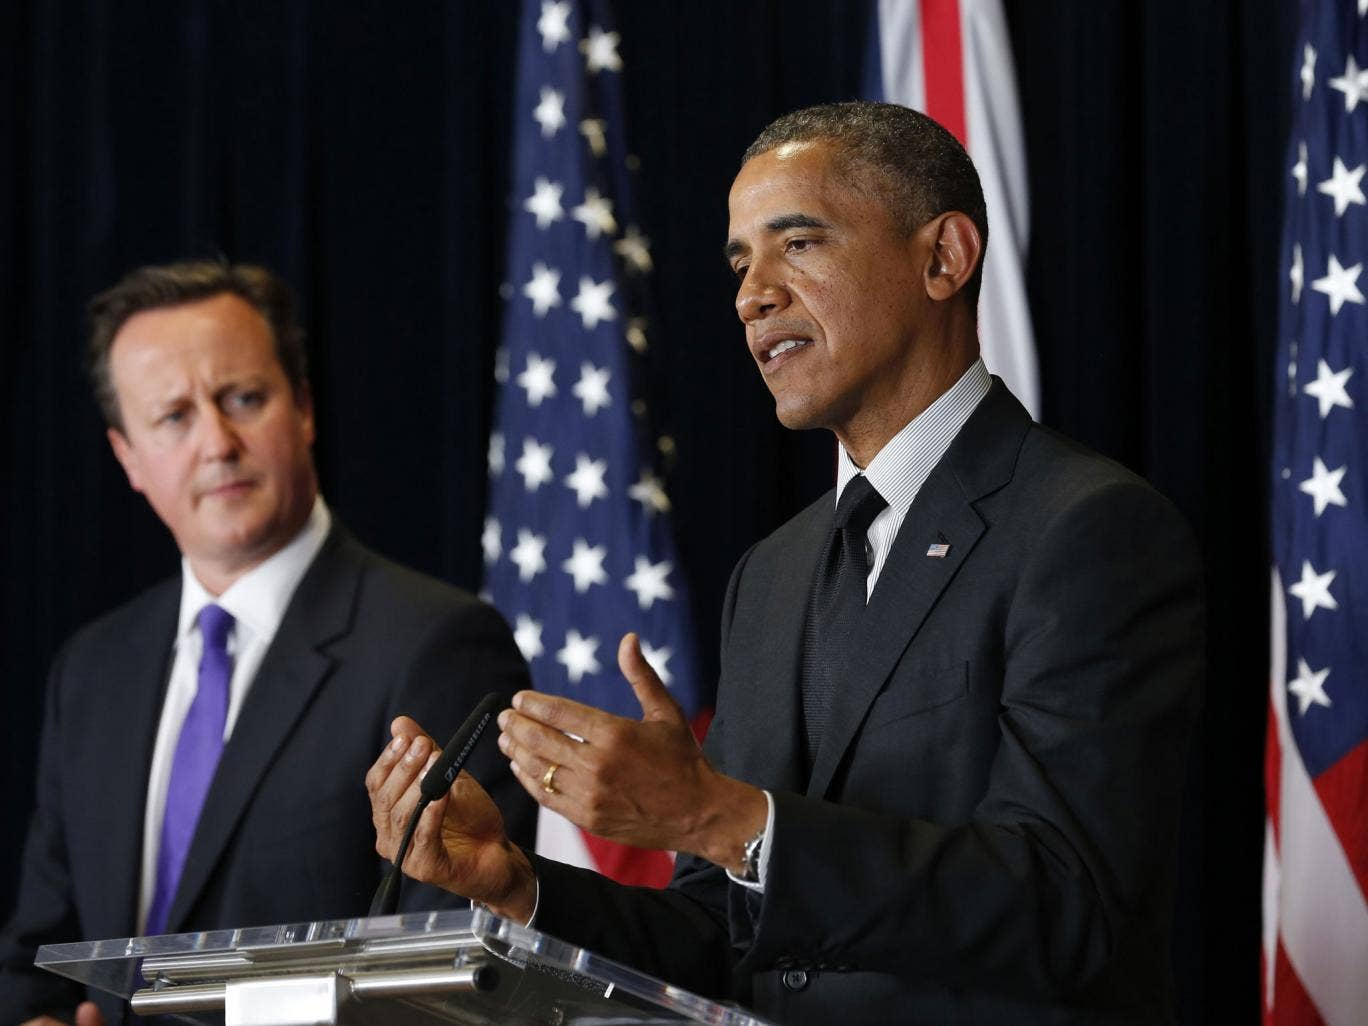 US President Barack Obama speaks next to David Cameron at a joint news conference after their meeting at the G7 summit in Brussels